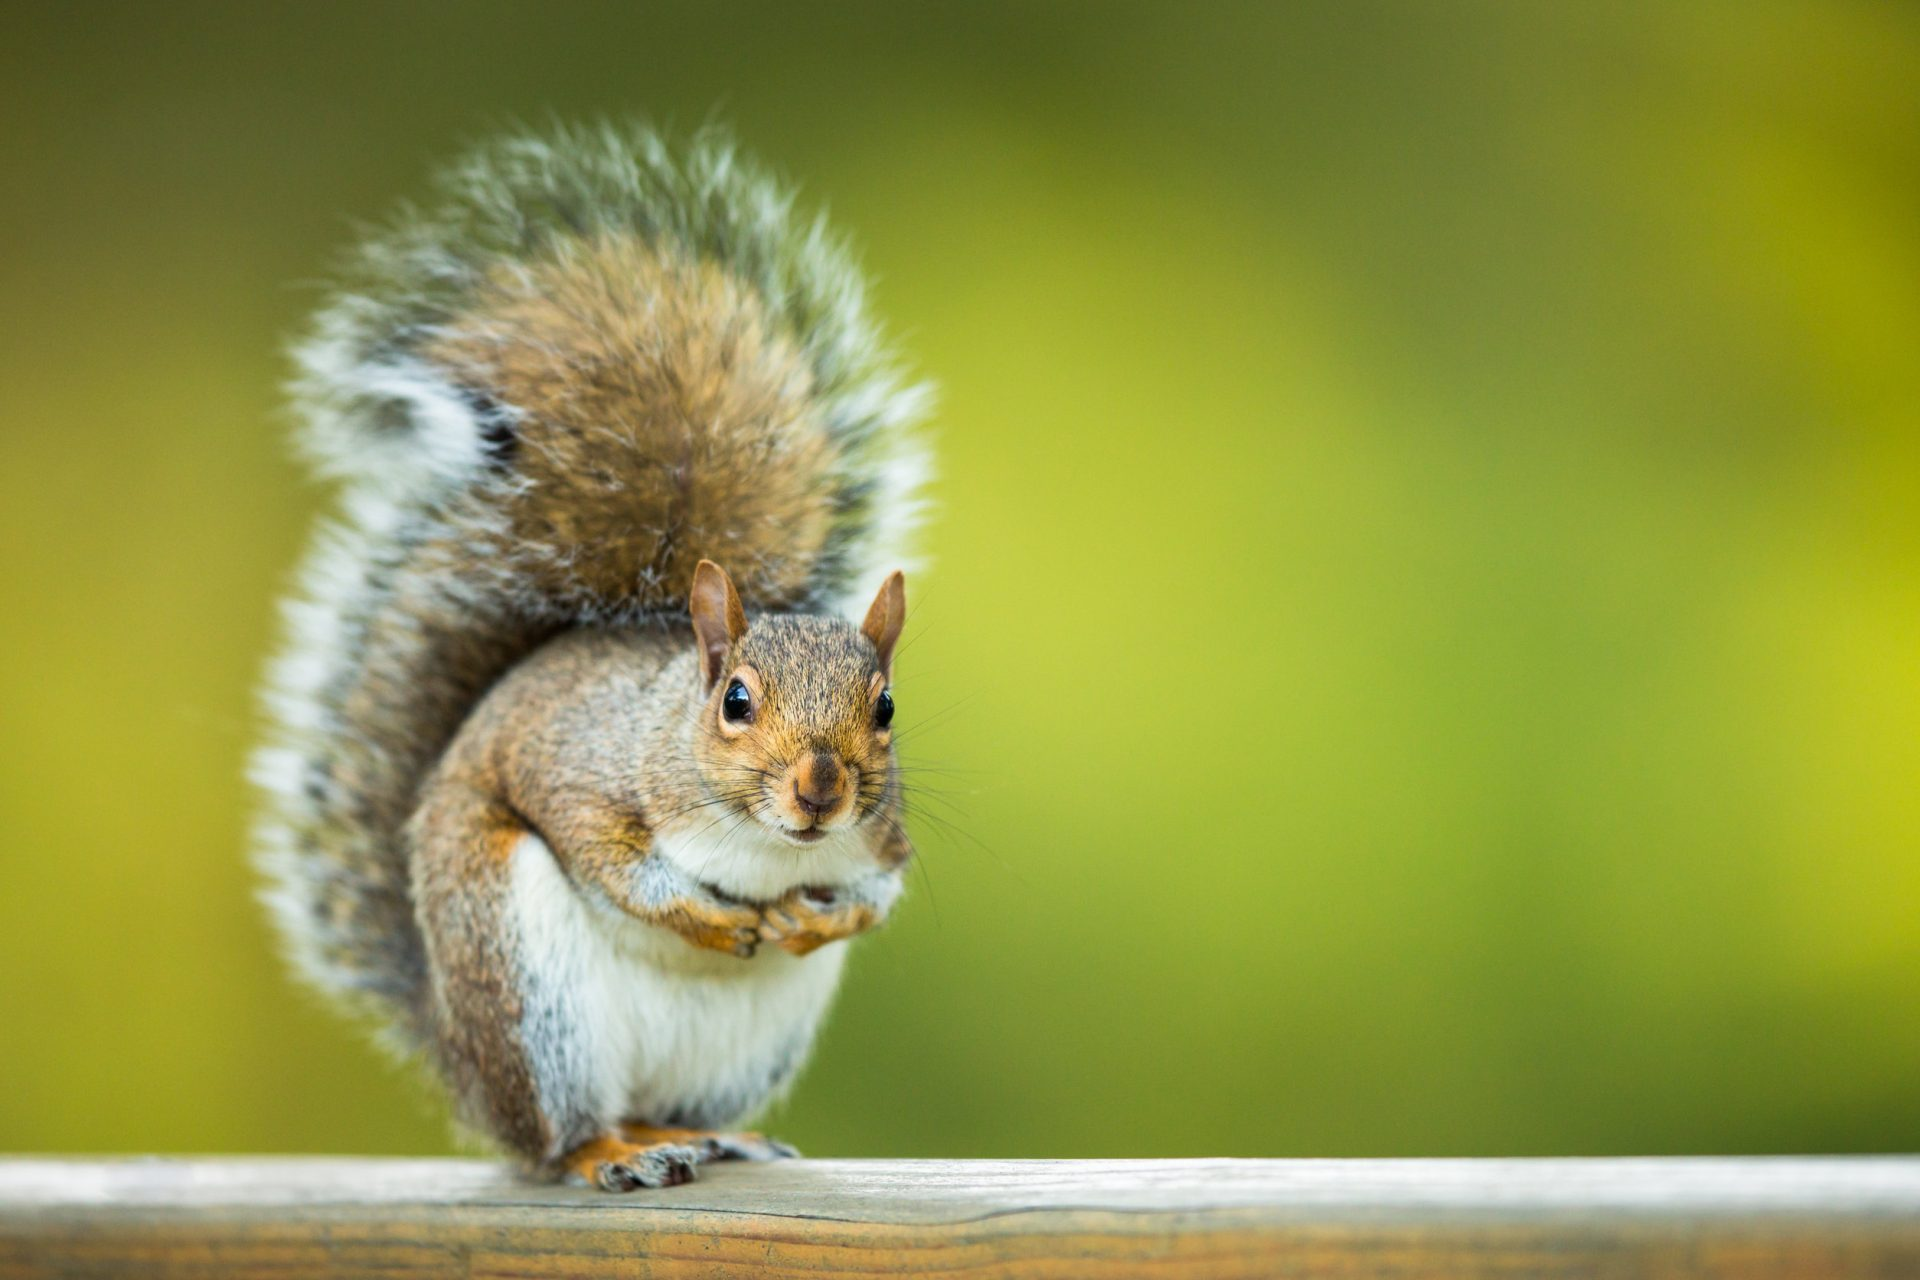 Get Rid of Squirrels on Your Property | Pest Control in Pasadena | Raven Termite & Pest Control